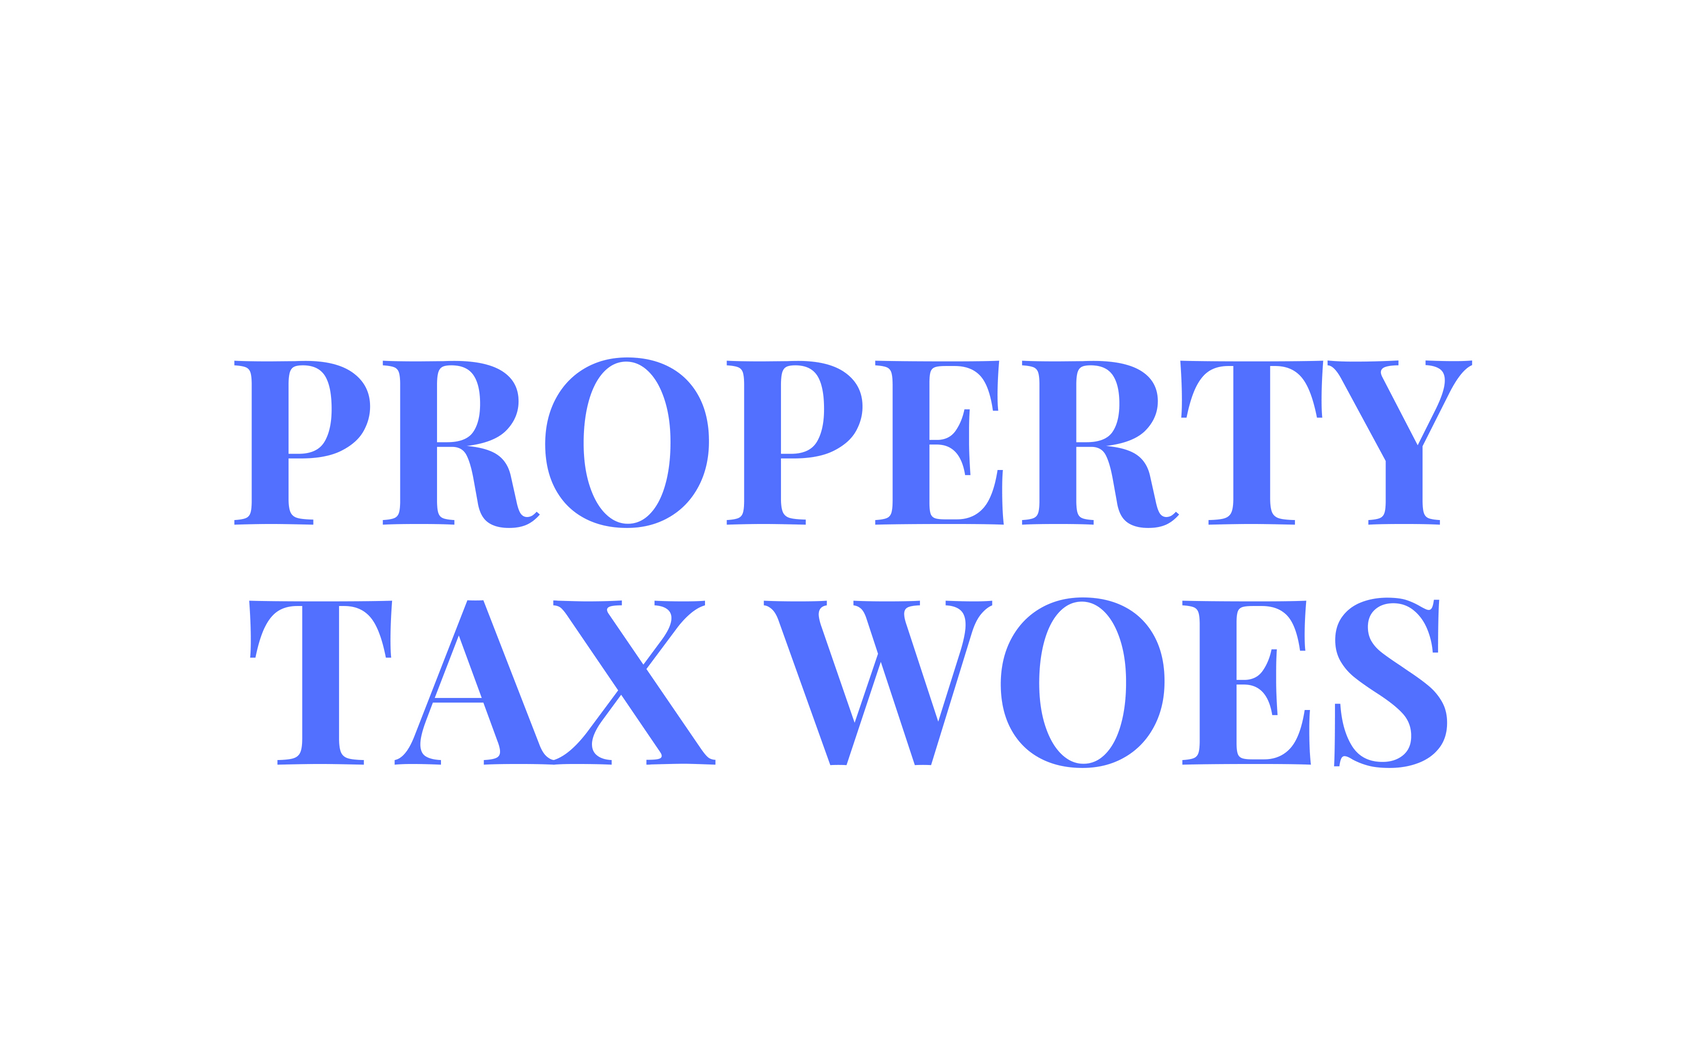 New property tax hike negatively impacts real estate market